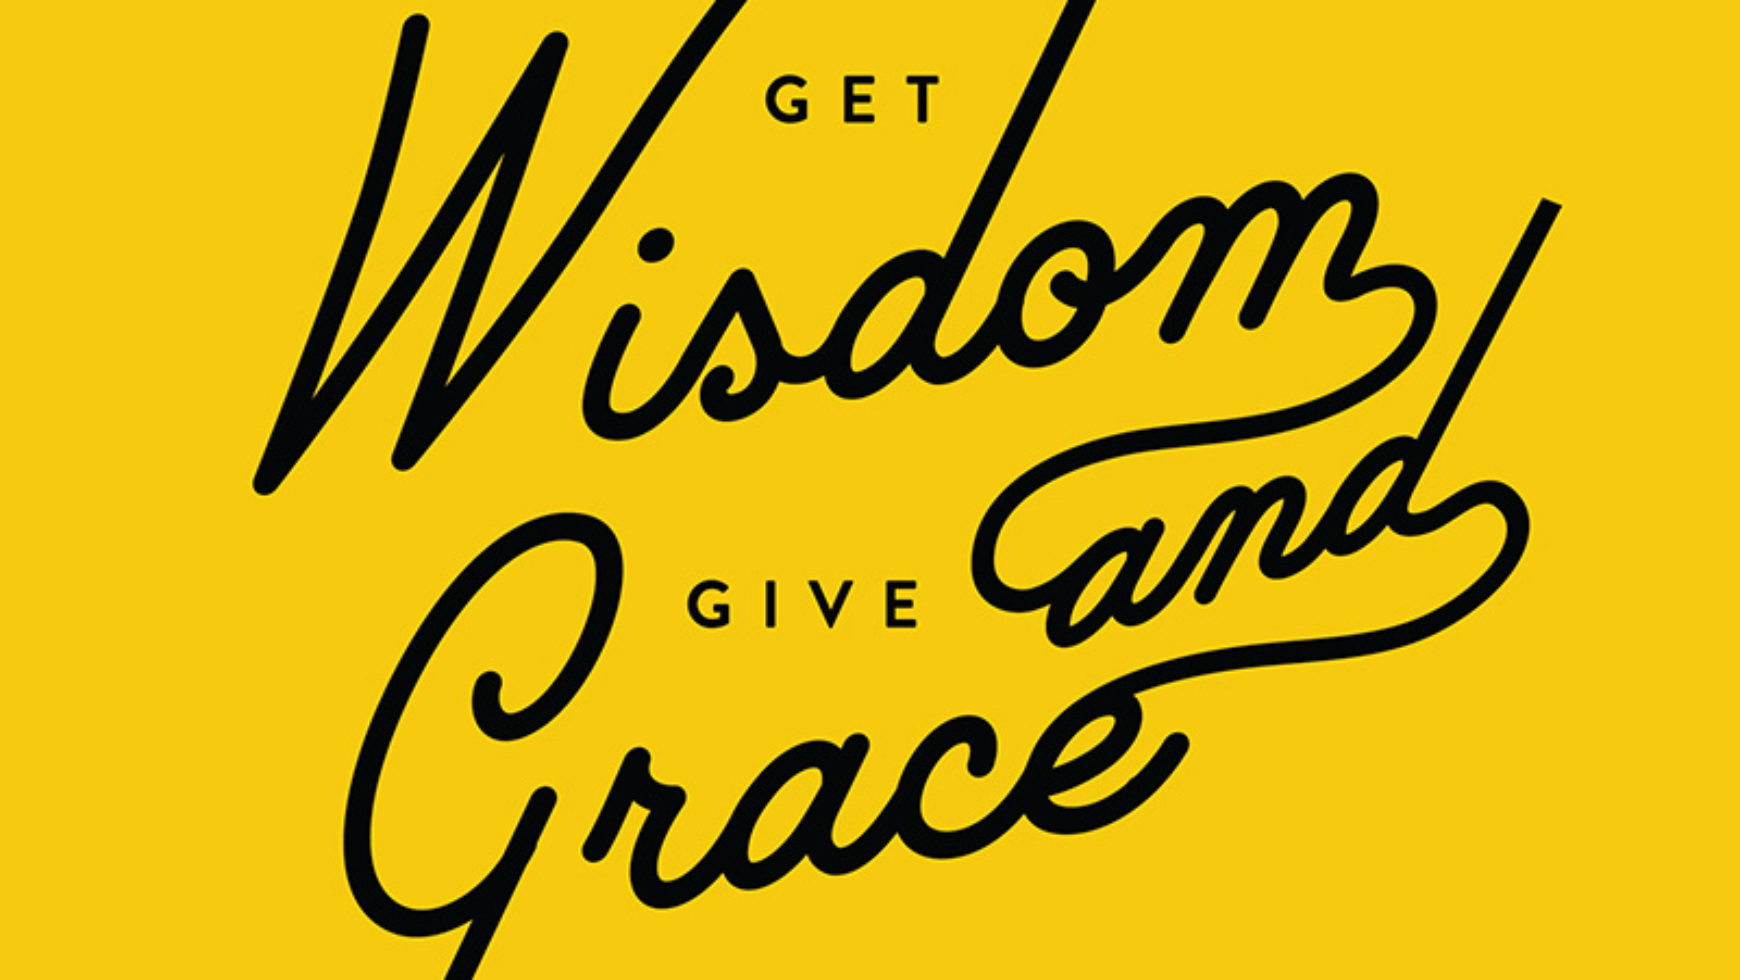 Grace and Wisdom